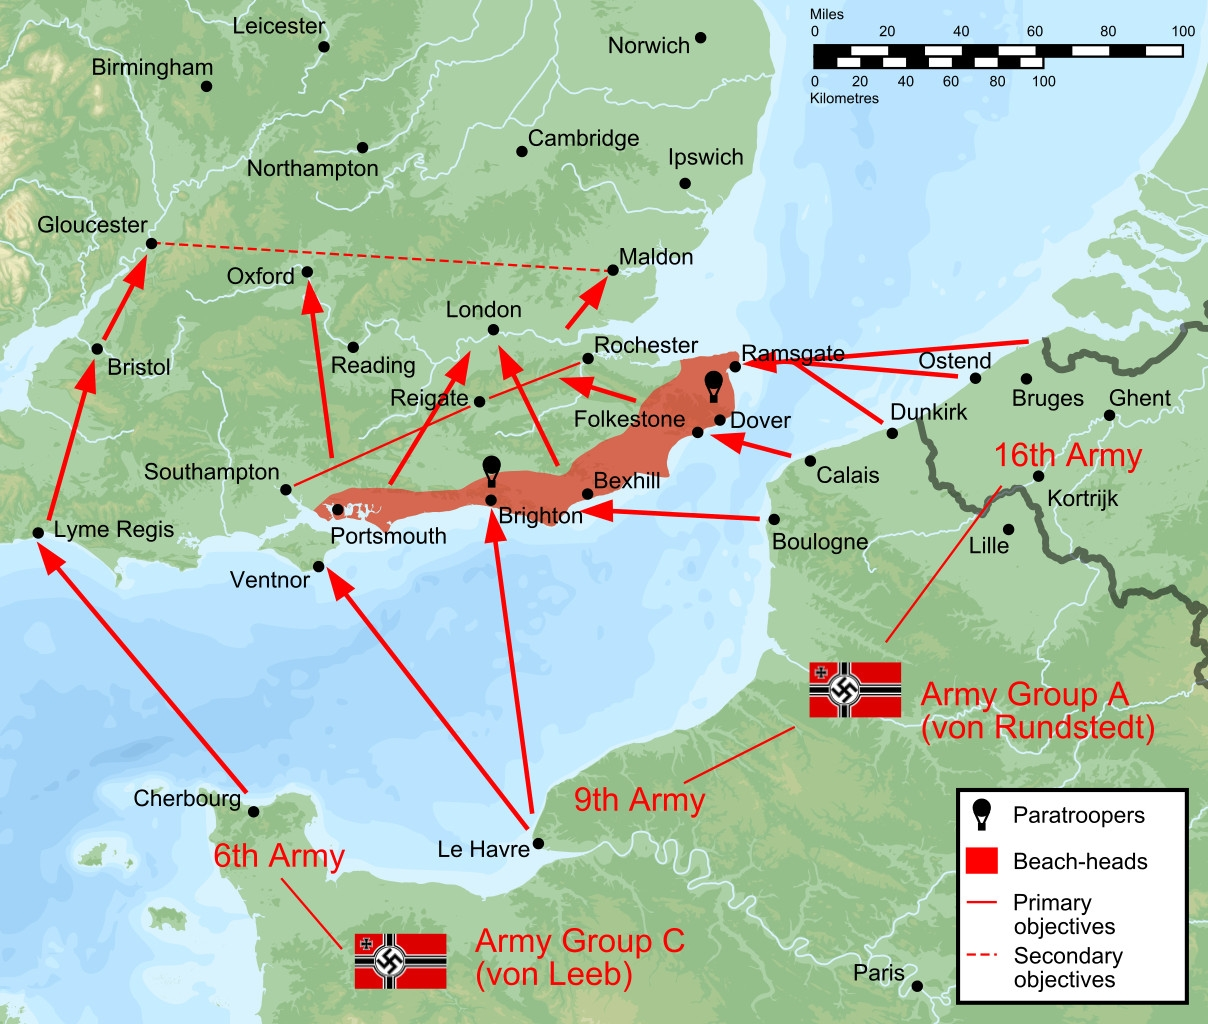 42 Maps That Explain World War Ii - Vox throughout Post Ww2 Germany Map